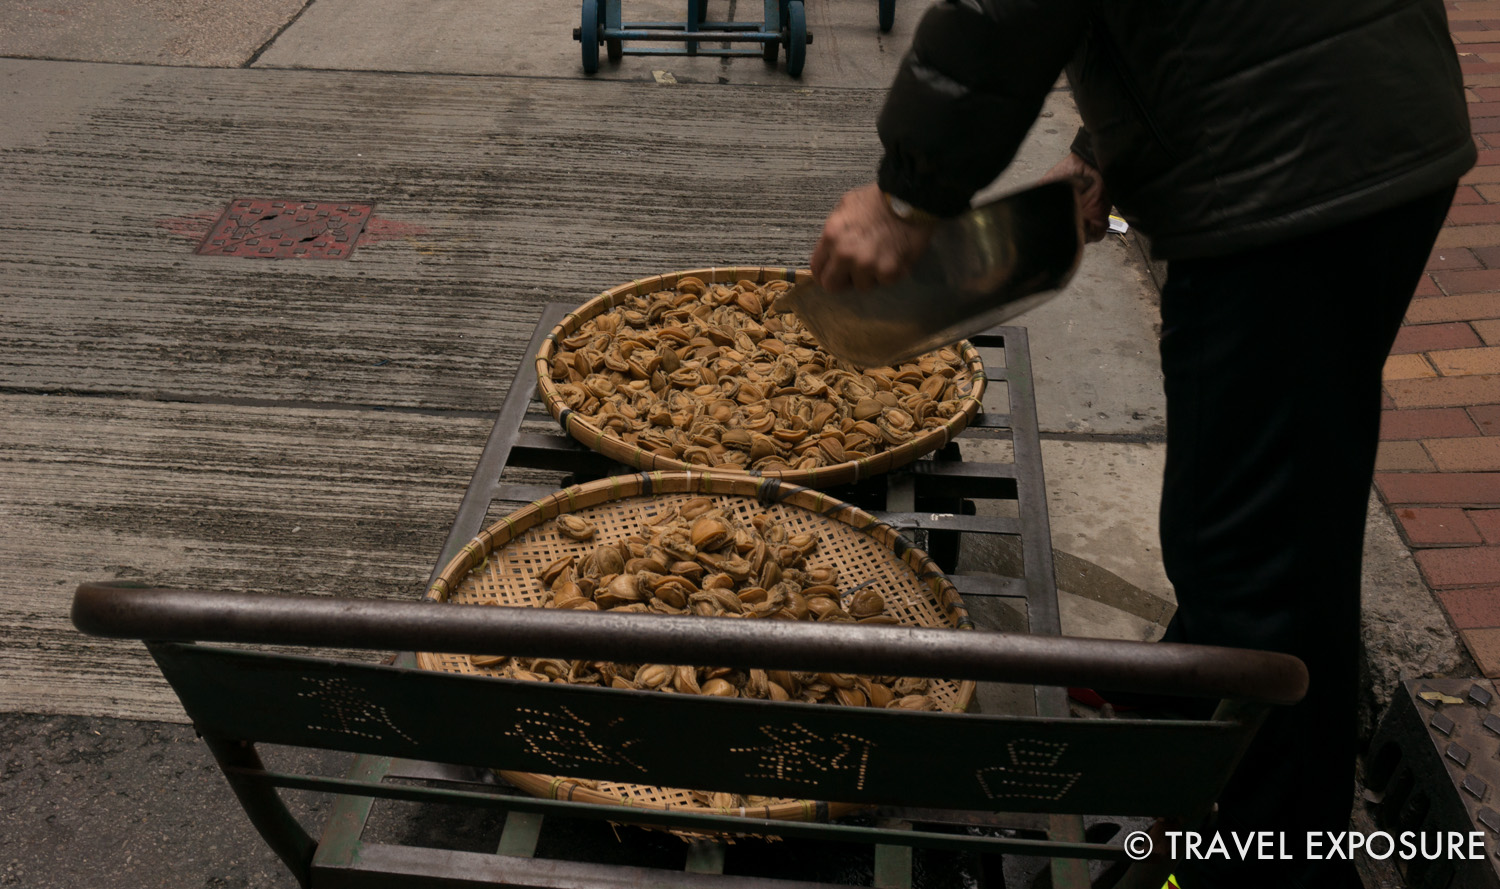 We saw some interesting things walking around Temple Street and the dried seafood markets. Dried seafood is a common ingredient in Chinese cuisine and traditional tonics.